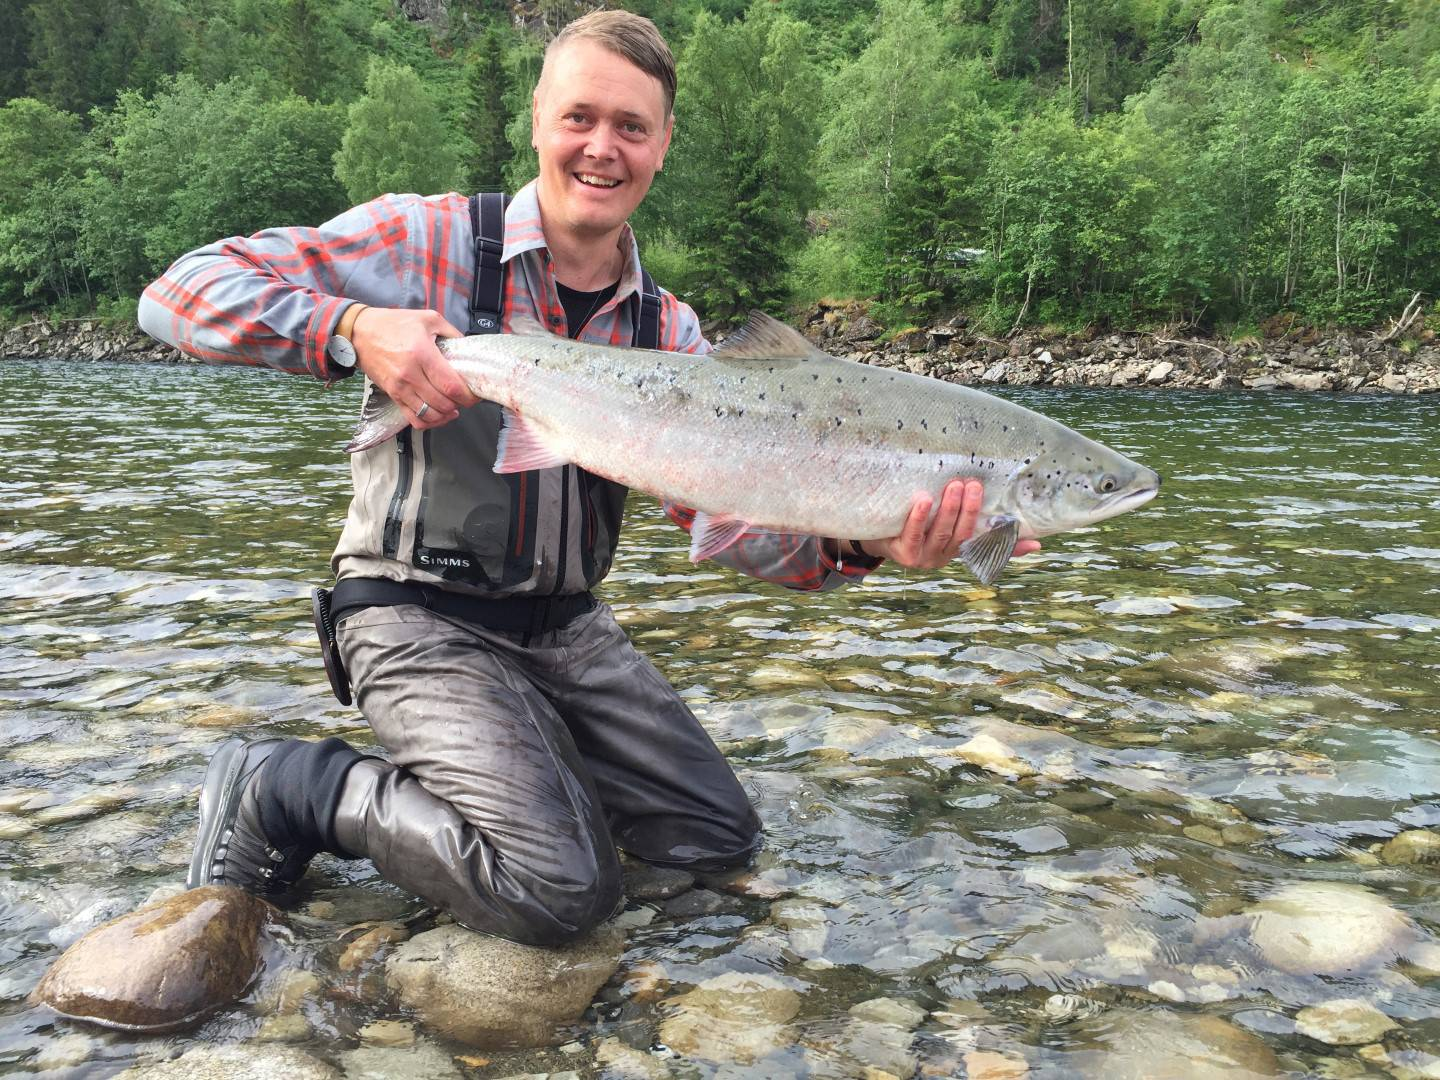 Jostein with his nice salmon from Beat B1.